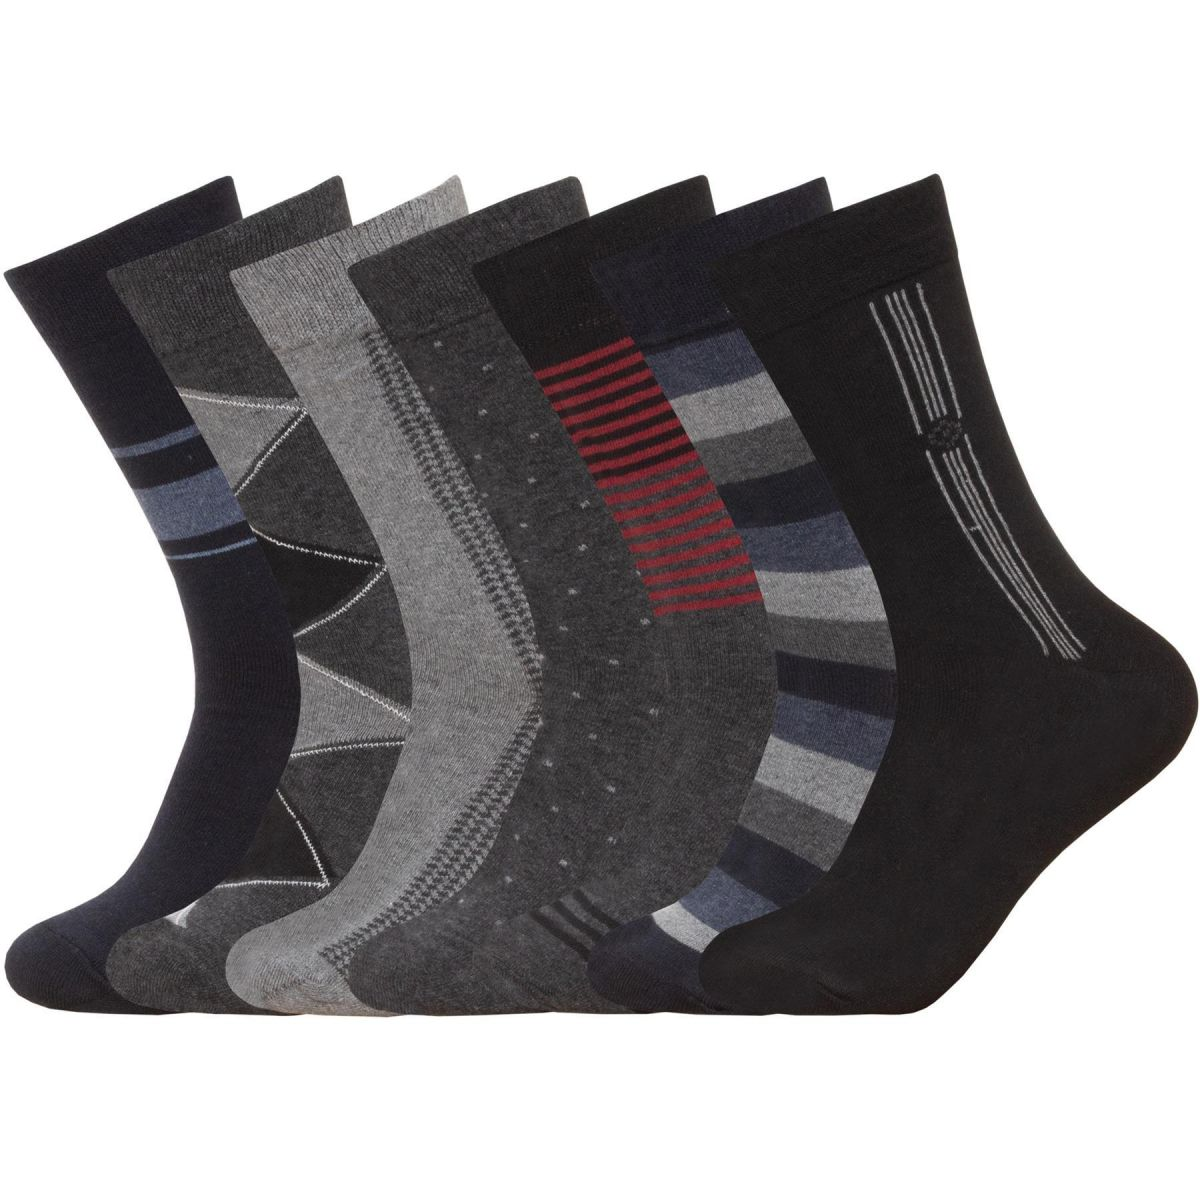 Accessories | 7 Pack Mens Socks 7 Days of the Week Casual Smart Work Socks 6 - 11, From £5.49, Guest Brand, in  | Raw Denim Outlet